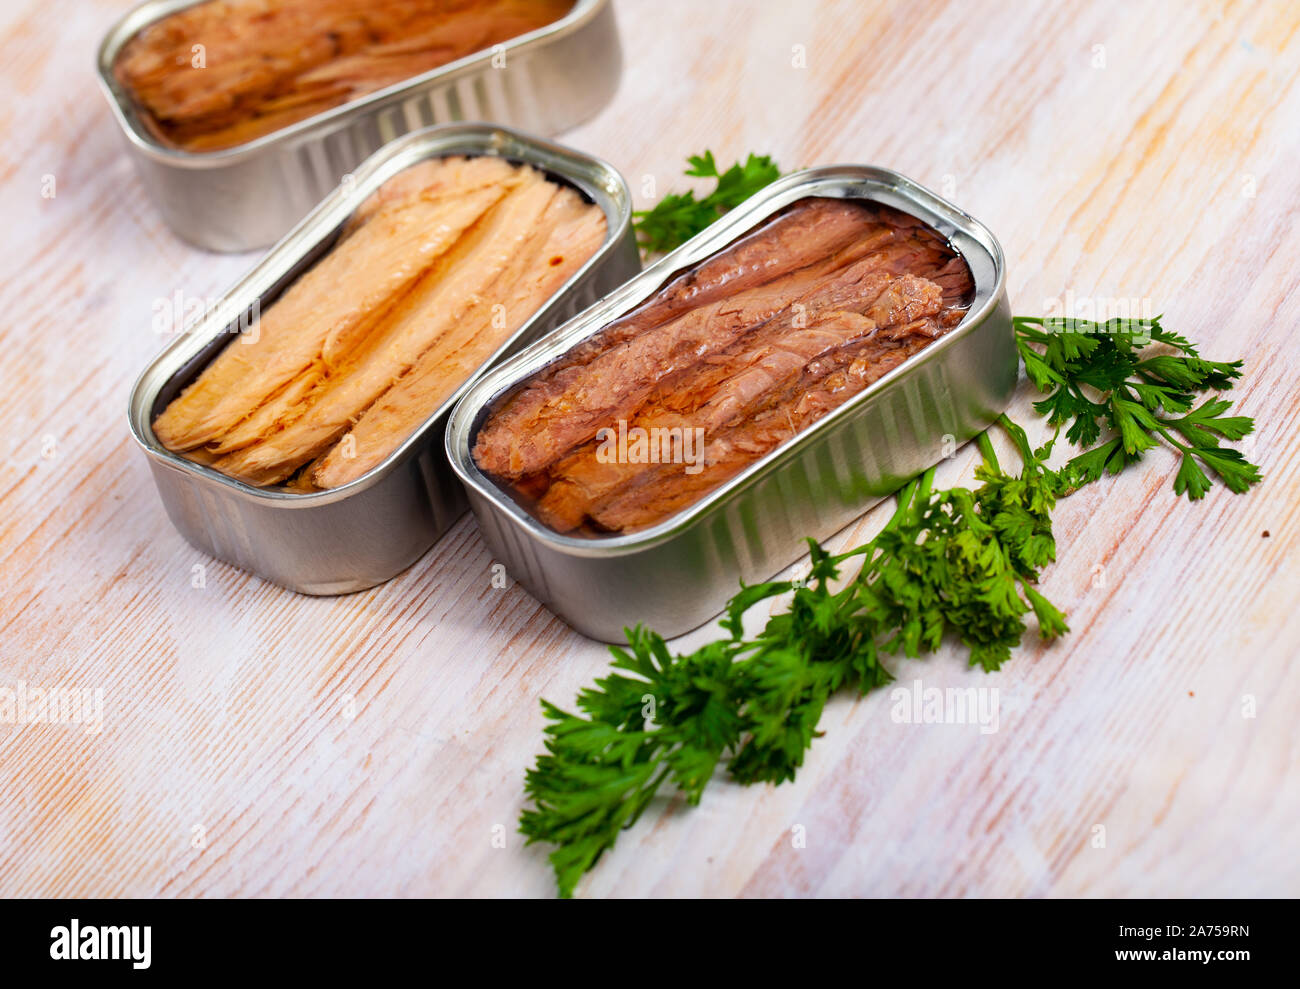 Canned seafood, Andalusian melva fish fillets preserved in oil on wooden table Stock Photo